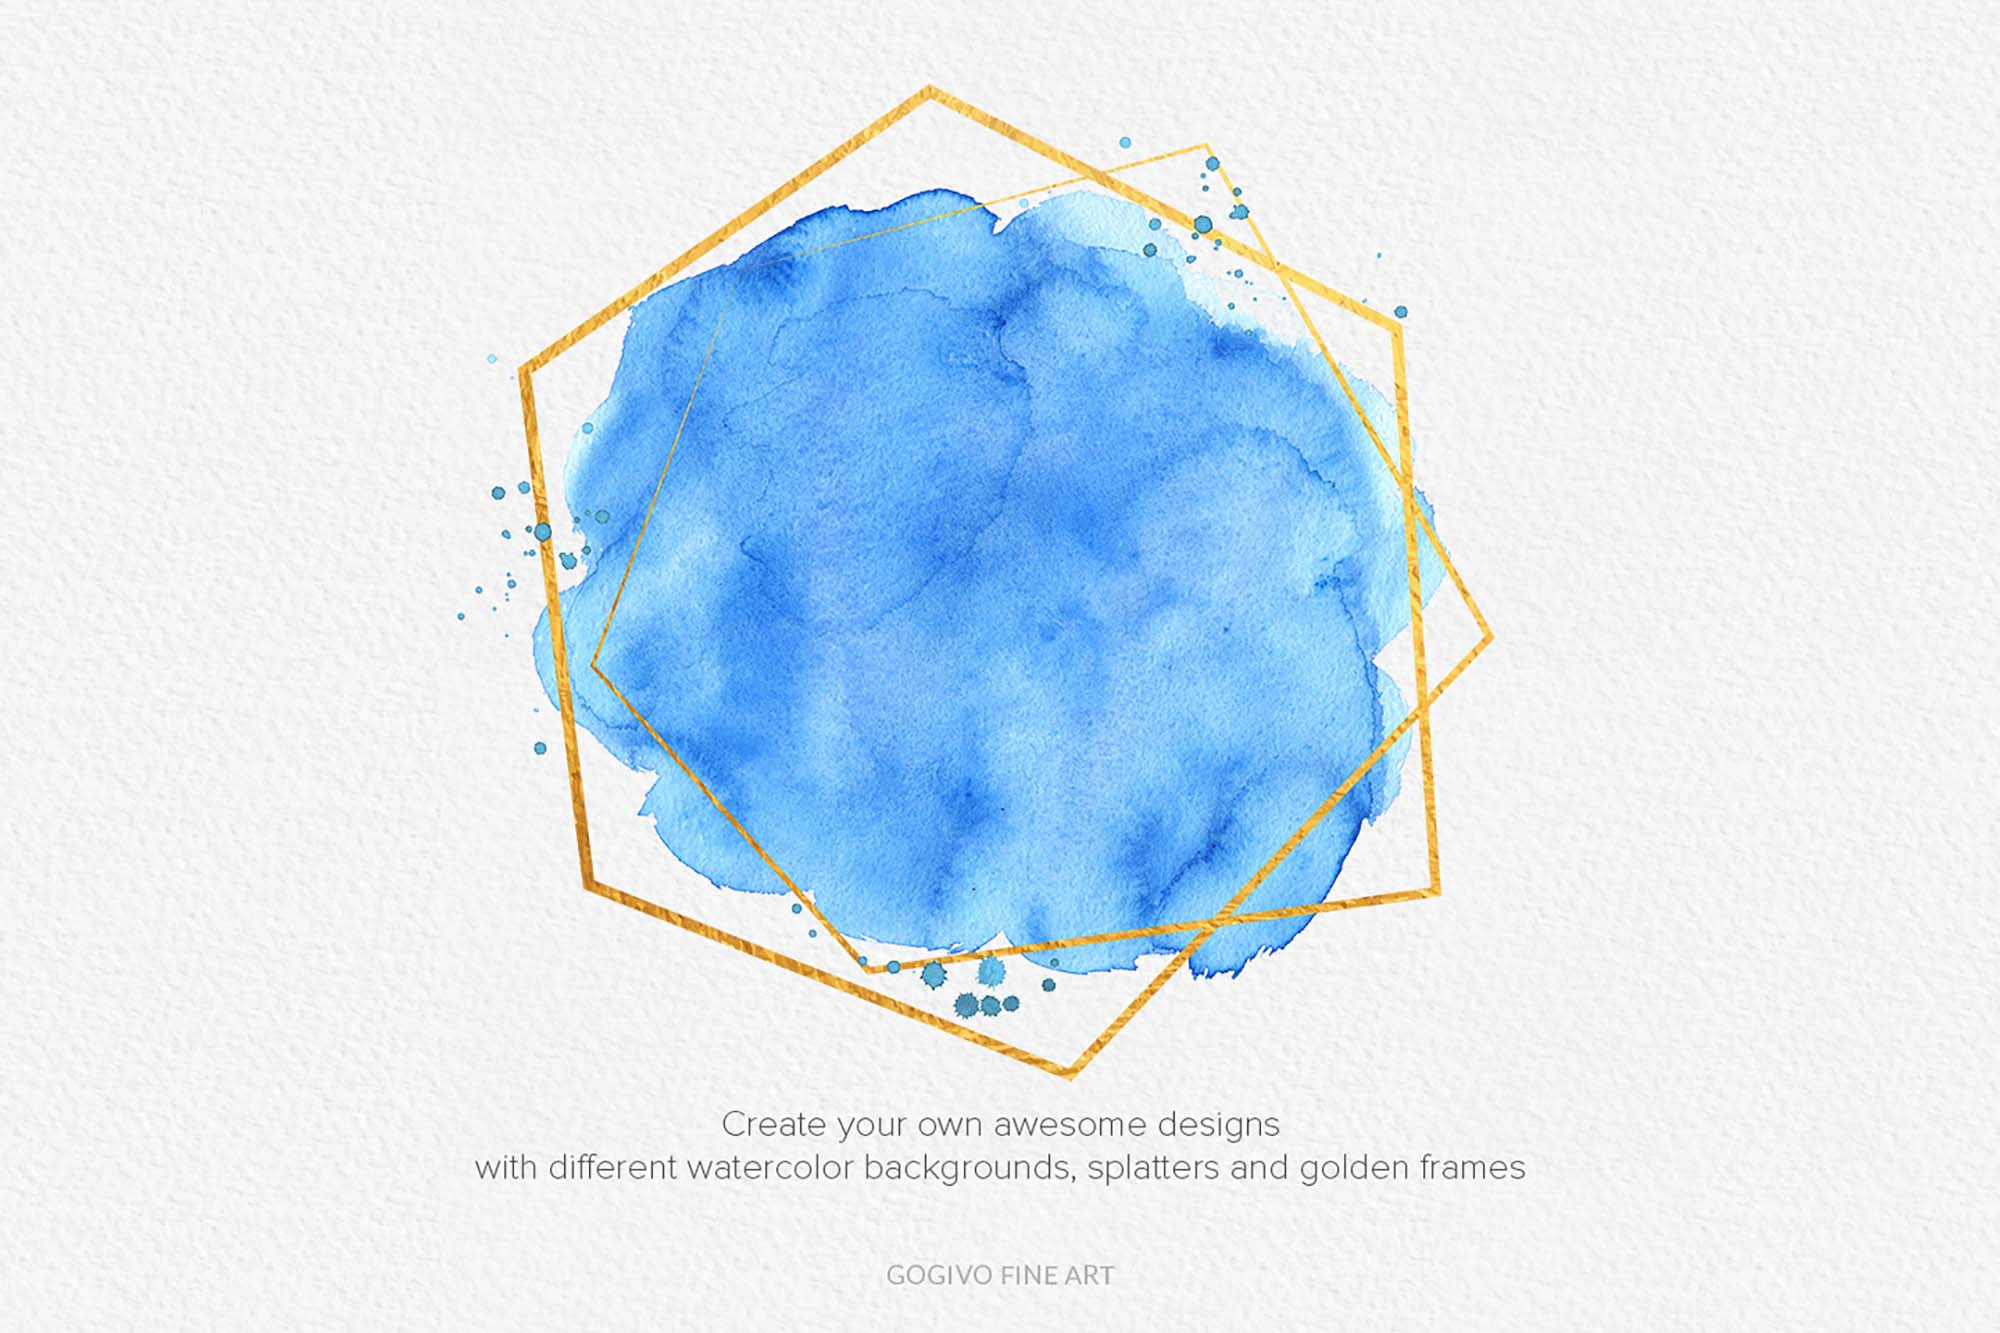 Watercolor Backgrounds and Splatters